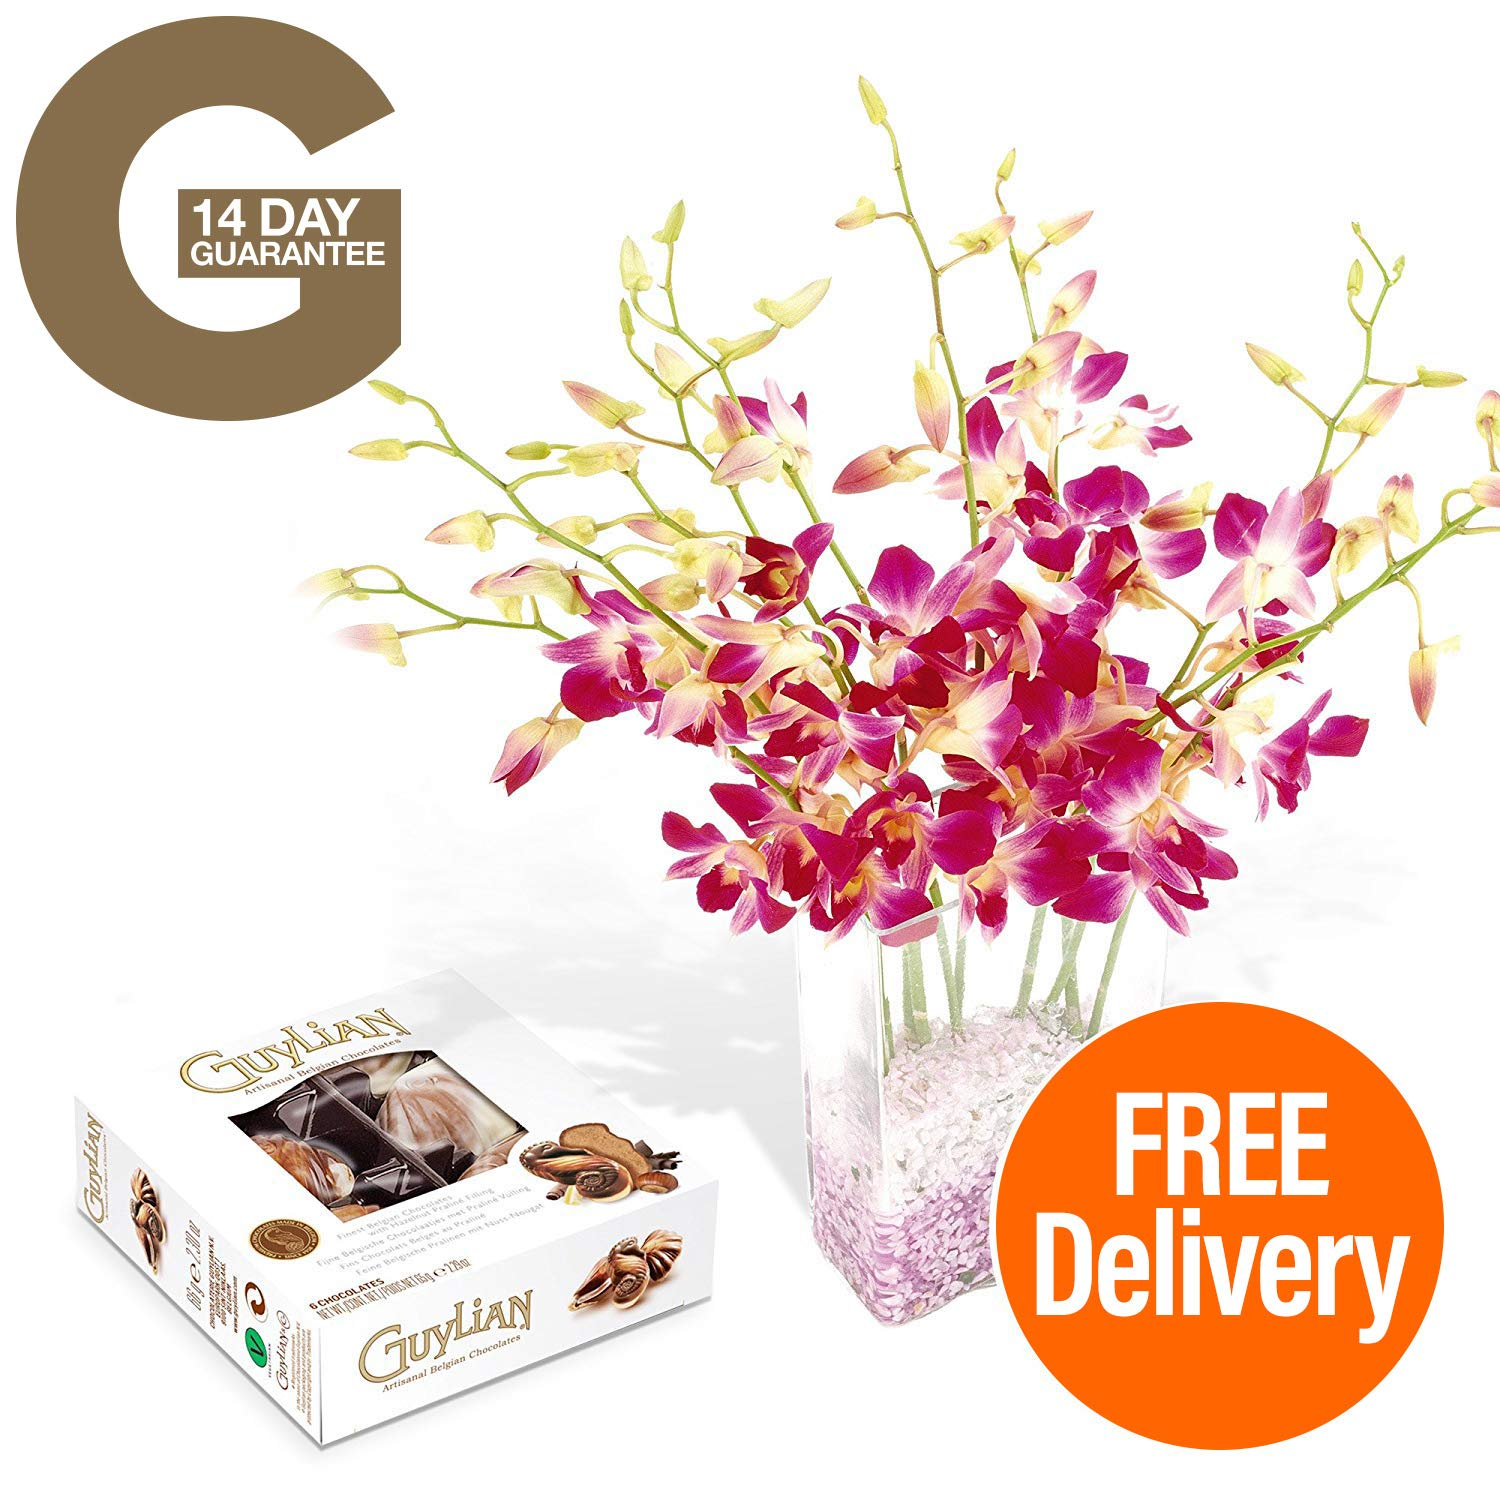 Fresh Flowers Delivered - Free UK Delivery - Singapore Orchid Bouquet with Free Chocolates, and Bonus Ebook Guide - Perfect for birthdays, anniversaries and thank you gifts - 14 Day Guarantee Guernsey Flowers